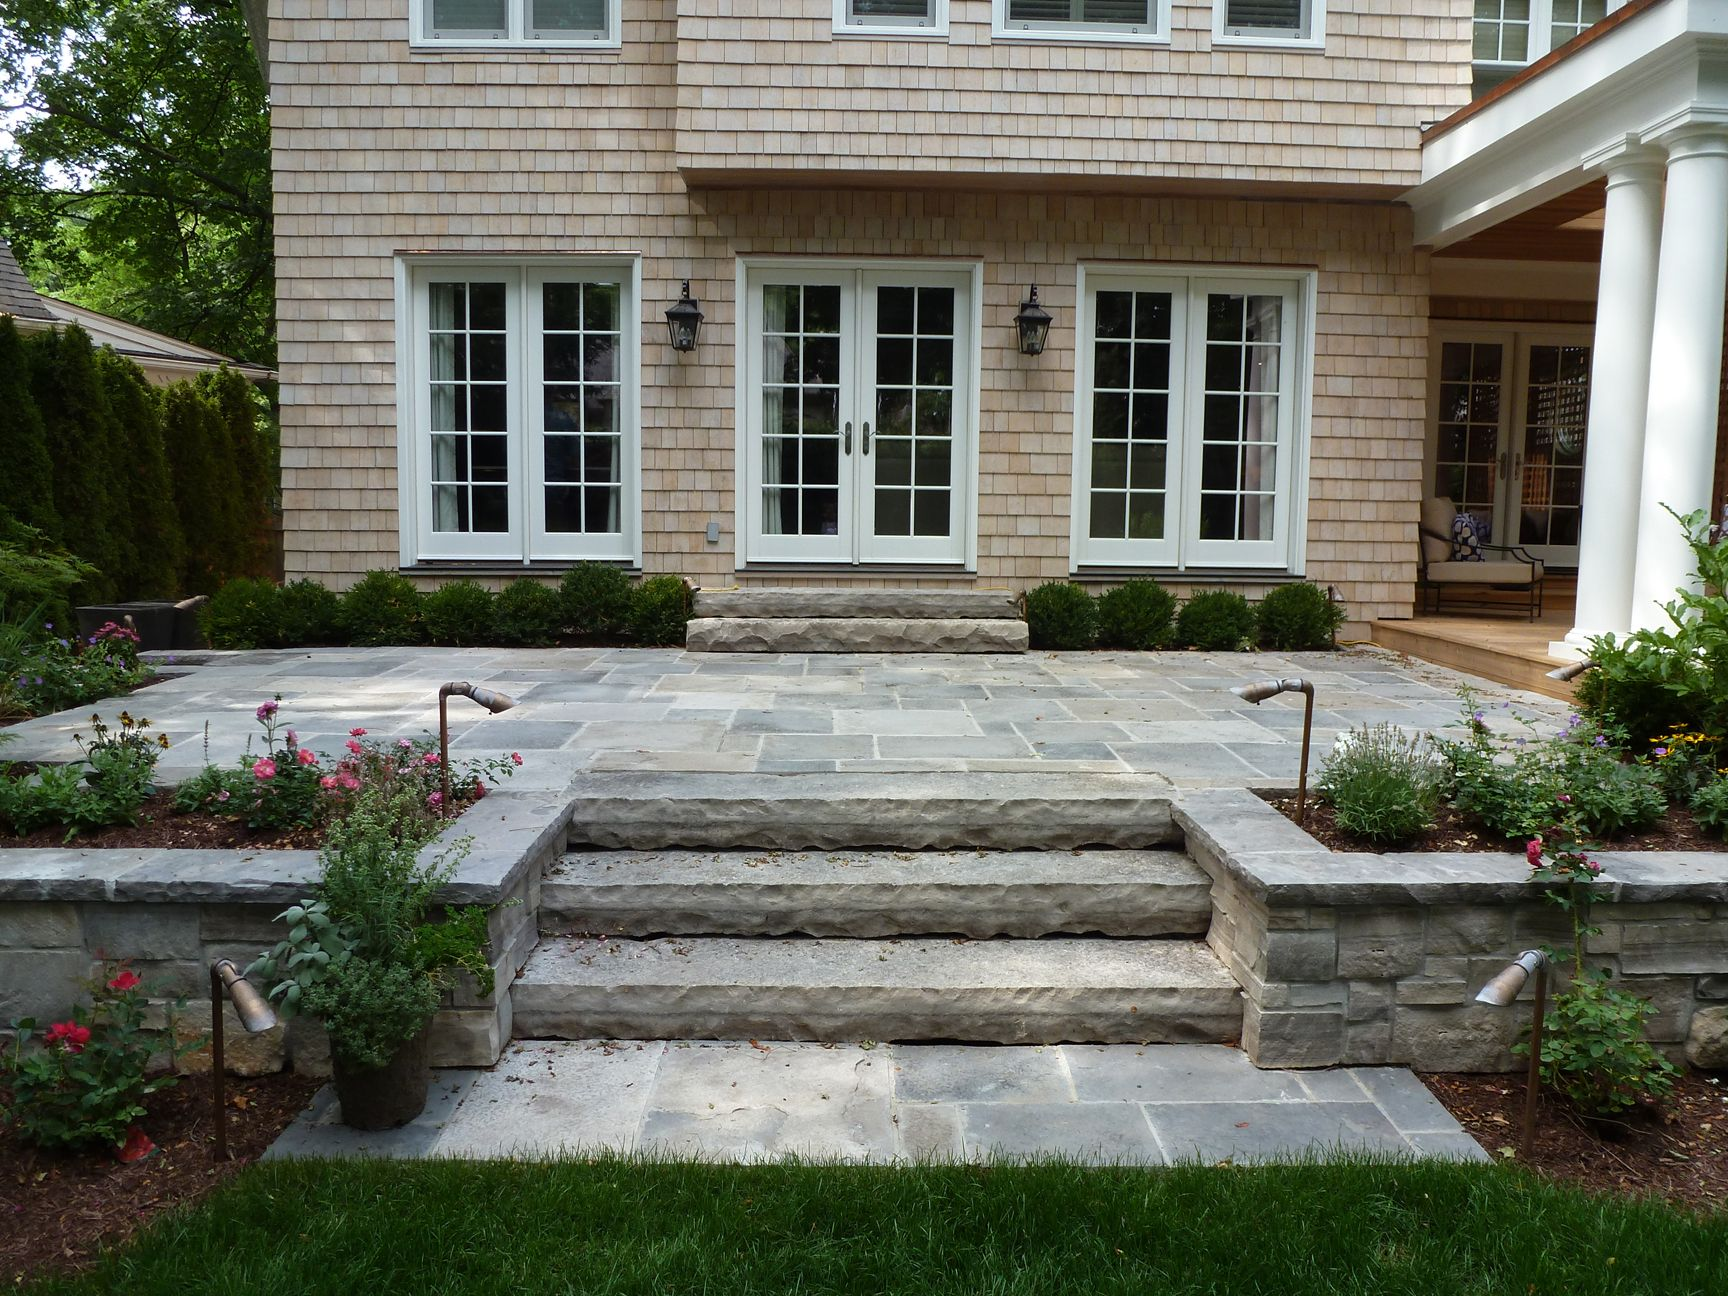 raised stone patios - Google Search … | Stone patio ... on Raised Concrete Patio Ideas id=61264